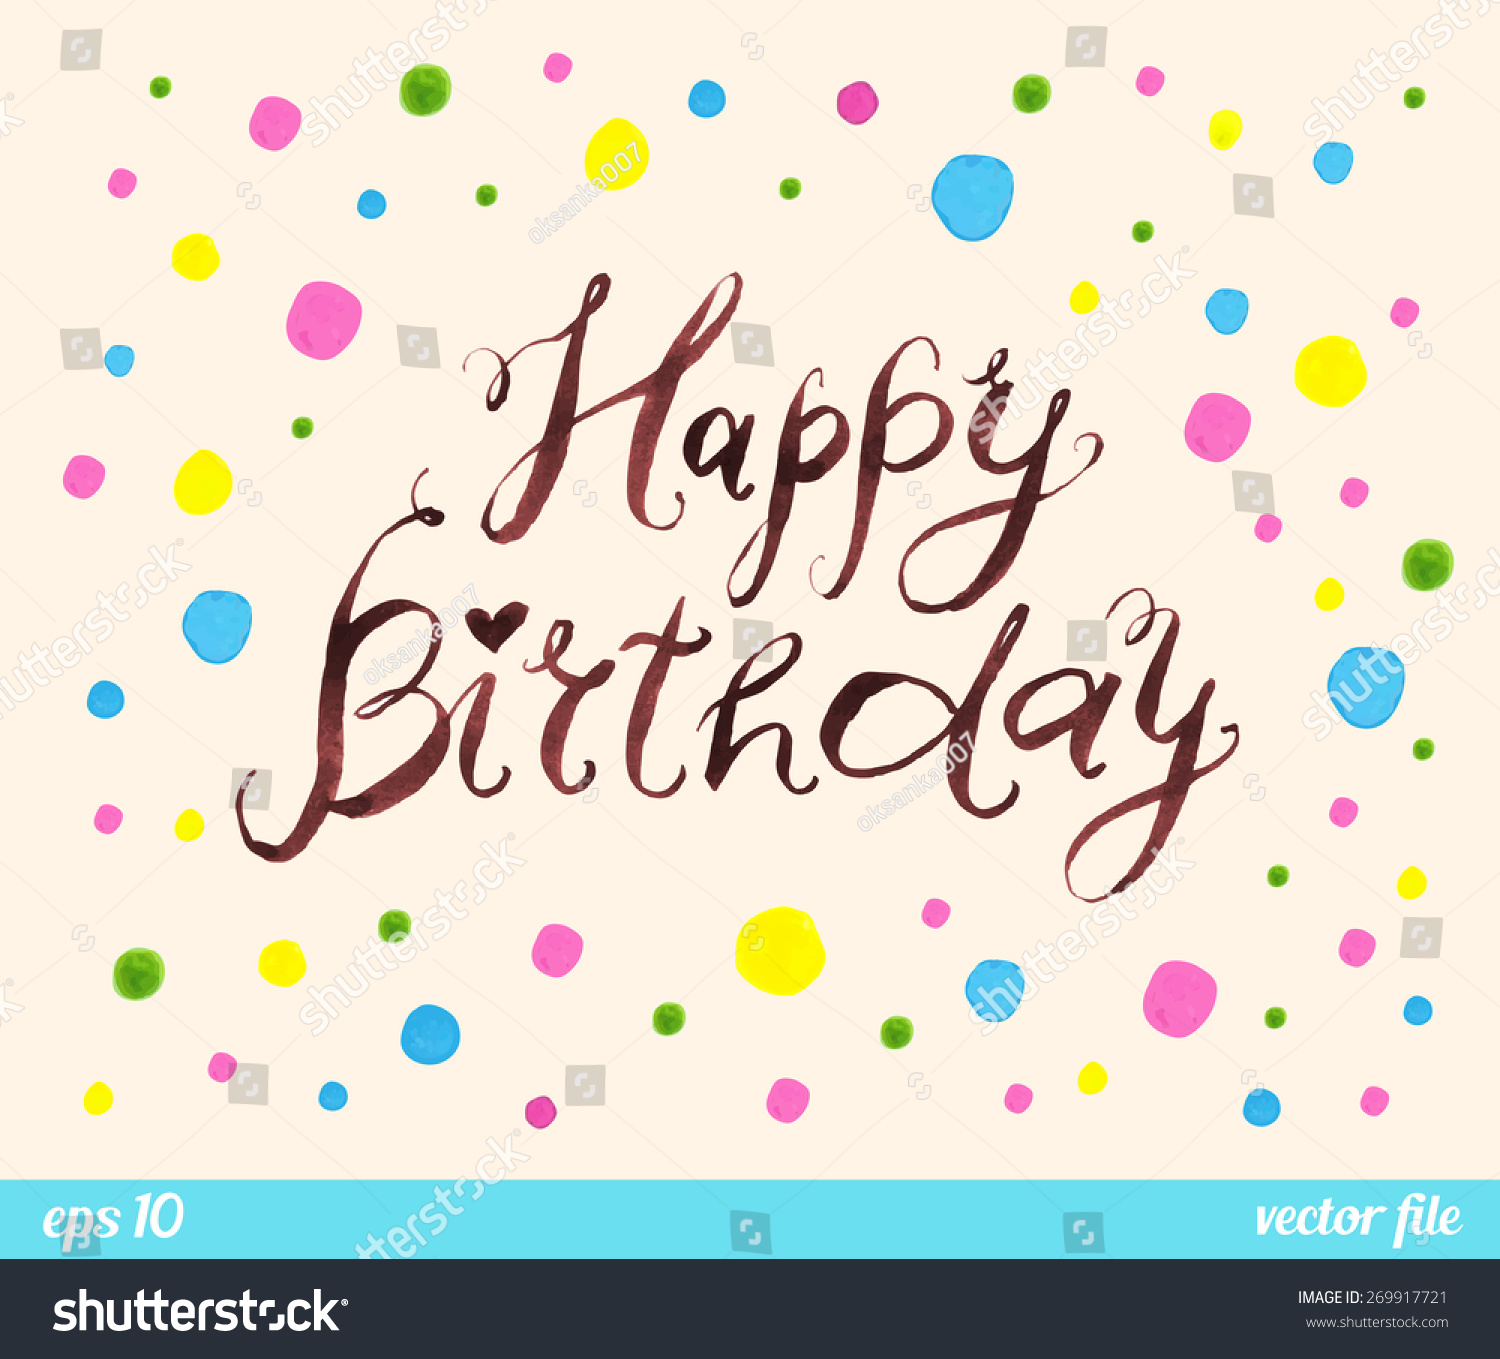 happy birthday border ; stock-vector-happy-birthday-text-message-confetti-pattern-border-frame-watercolor-ink-web-and-mobile-269917721